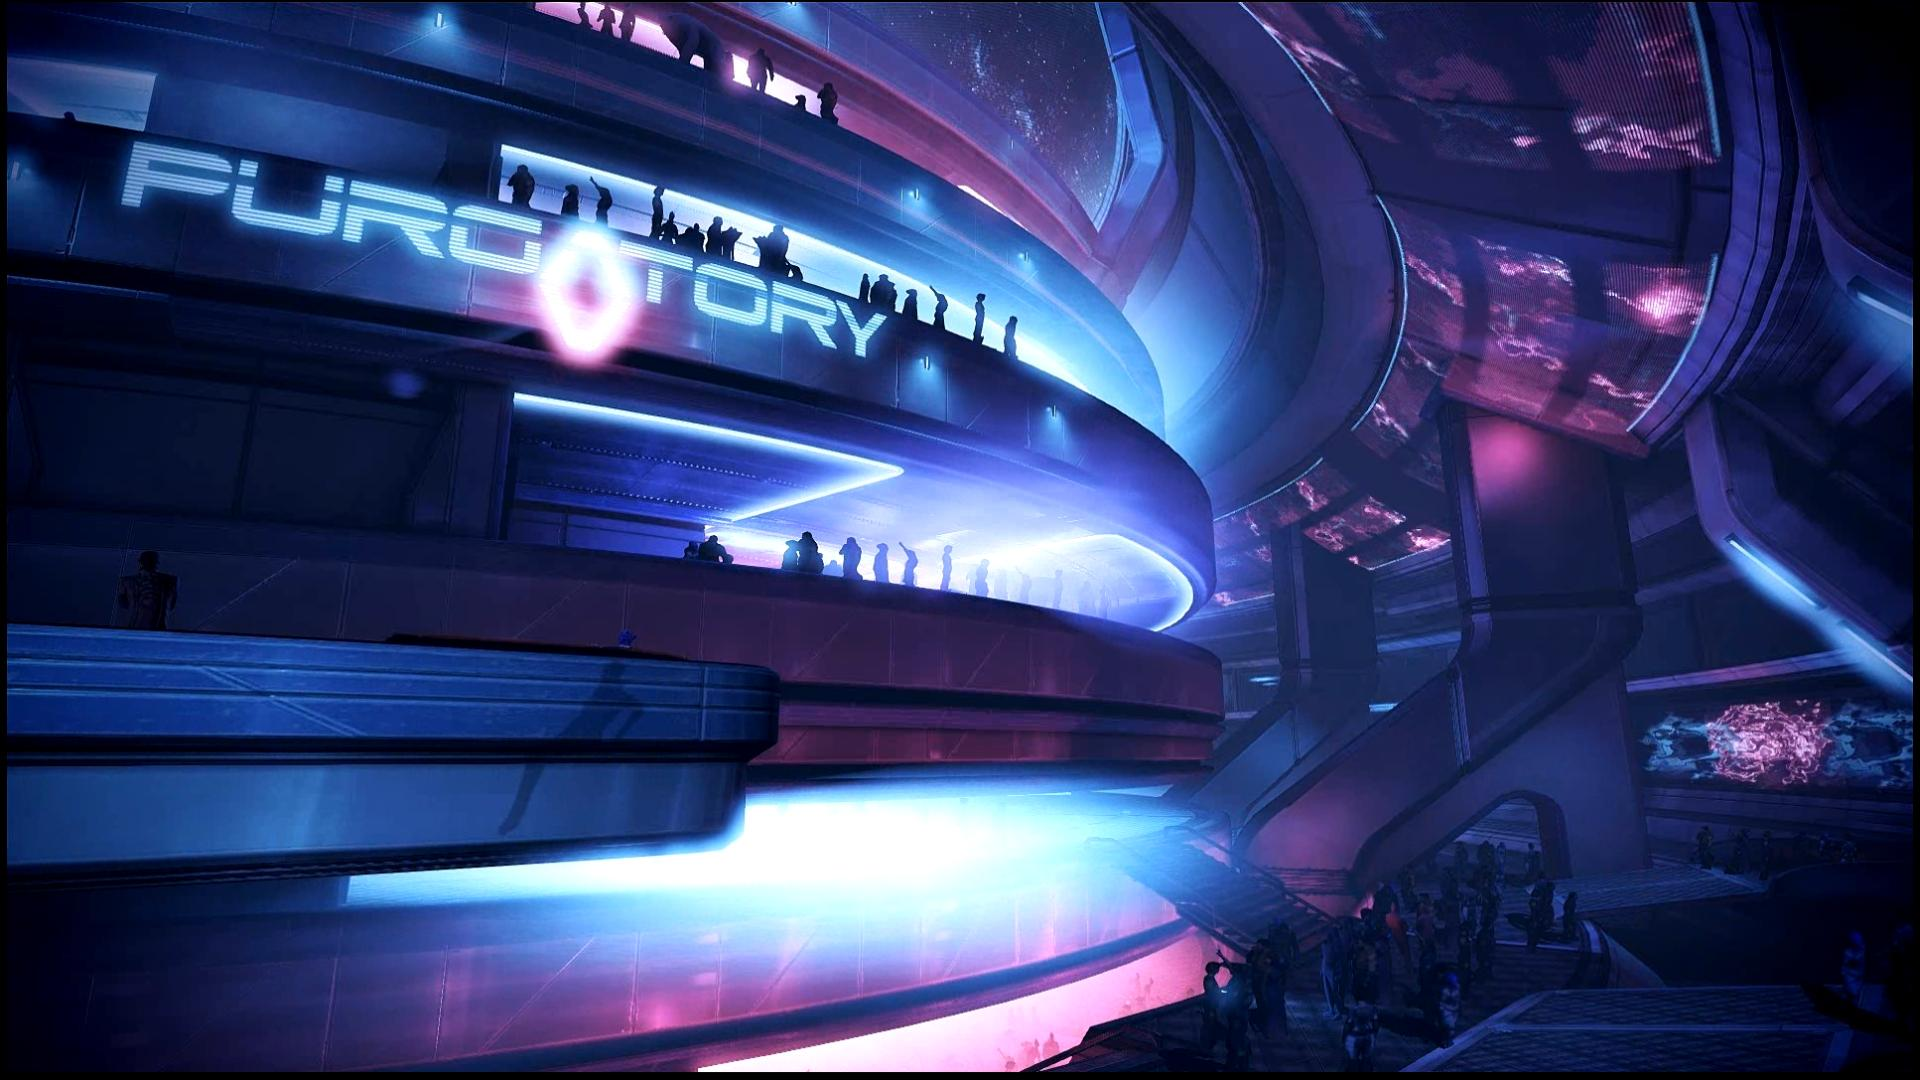 Mass Effect 3 Purgatory Dreamscene by droot1986